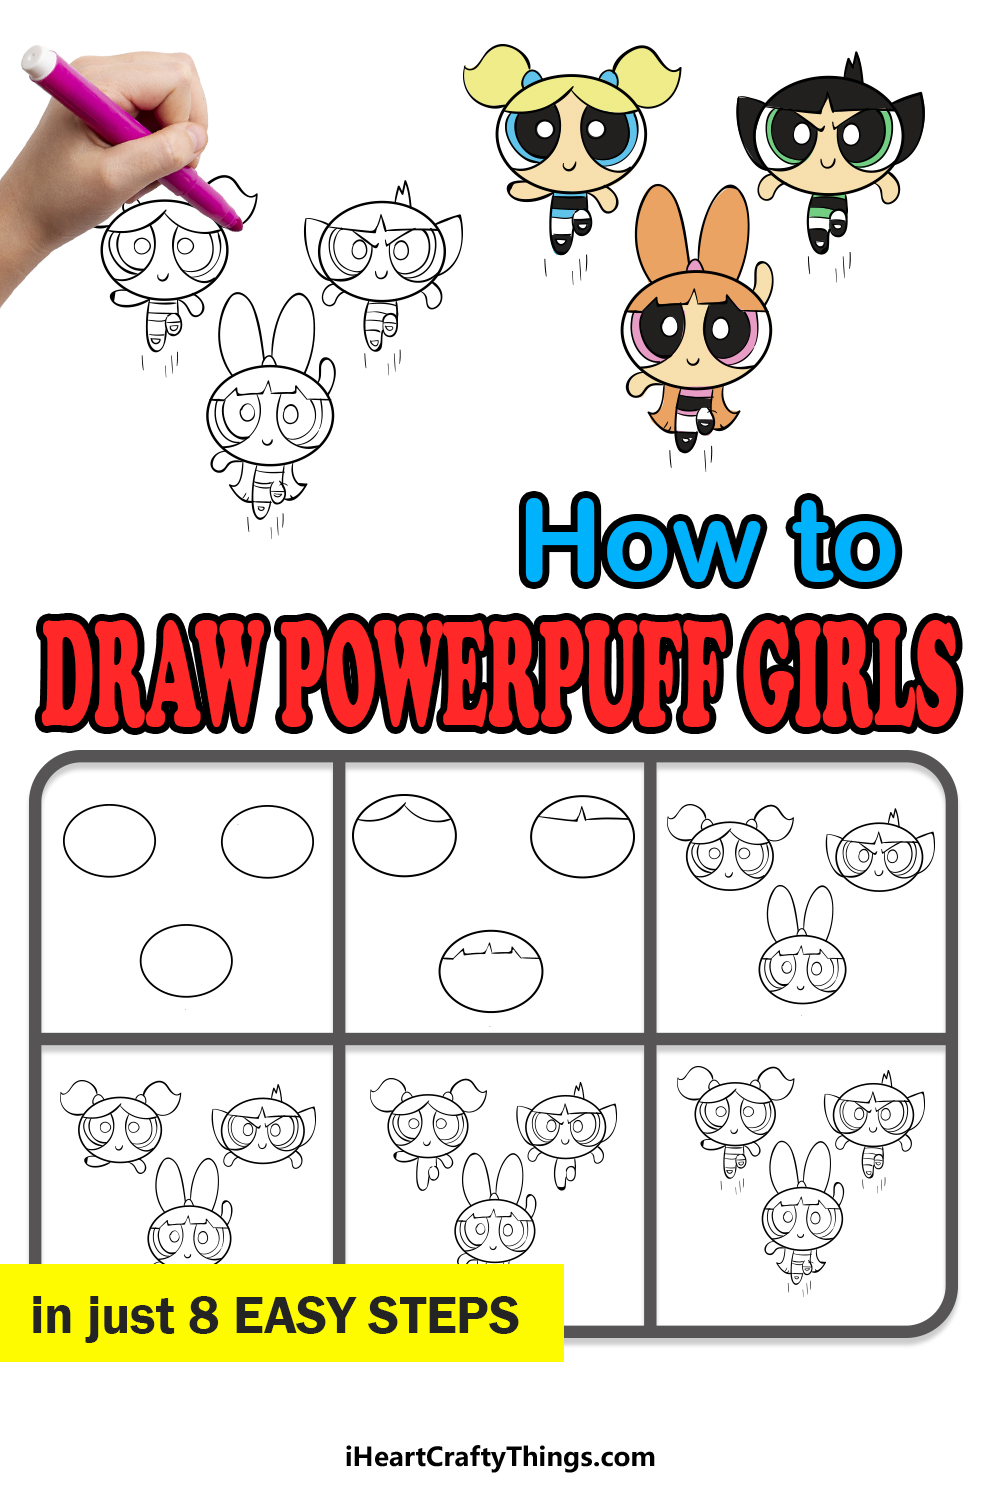 how to draw powerpuff girls in 8 easy steps